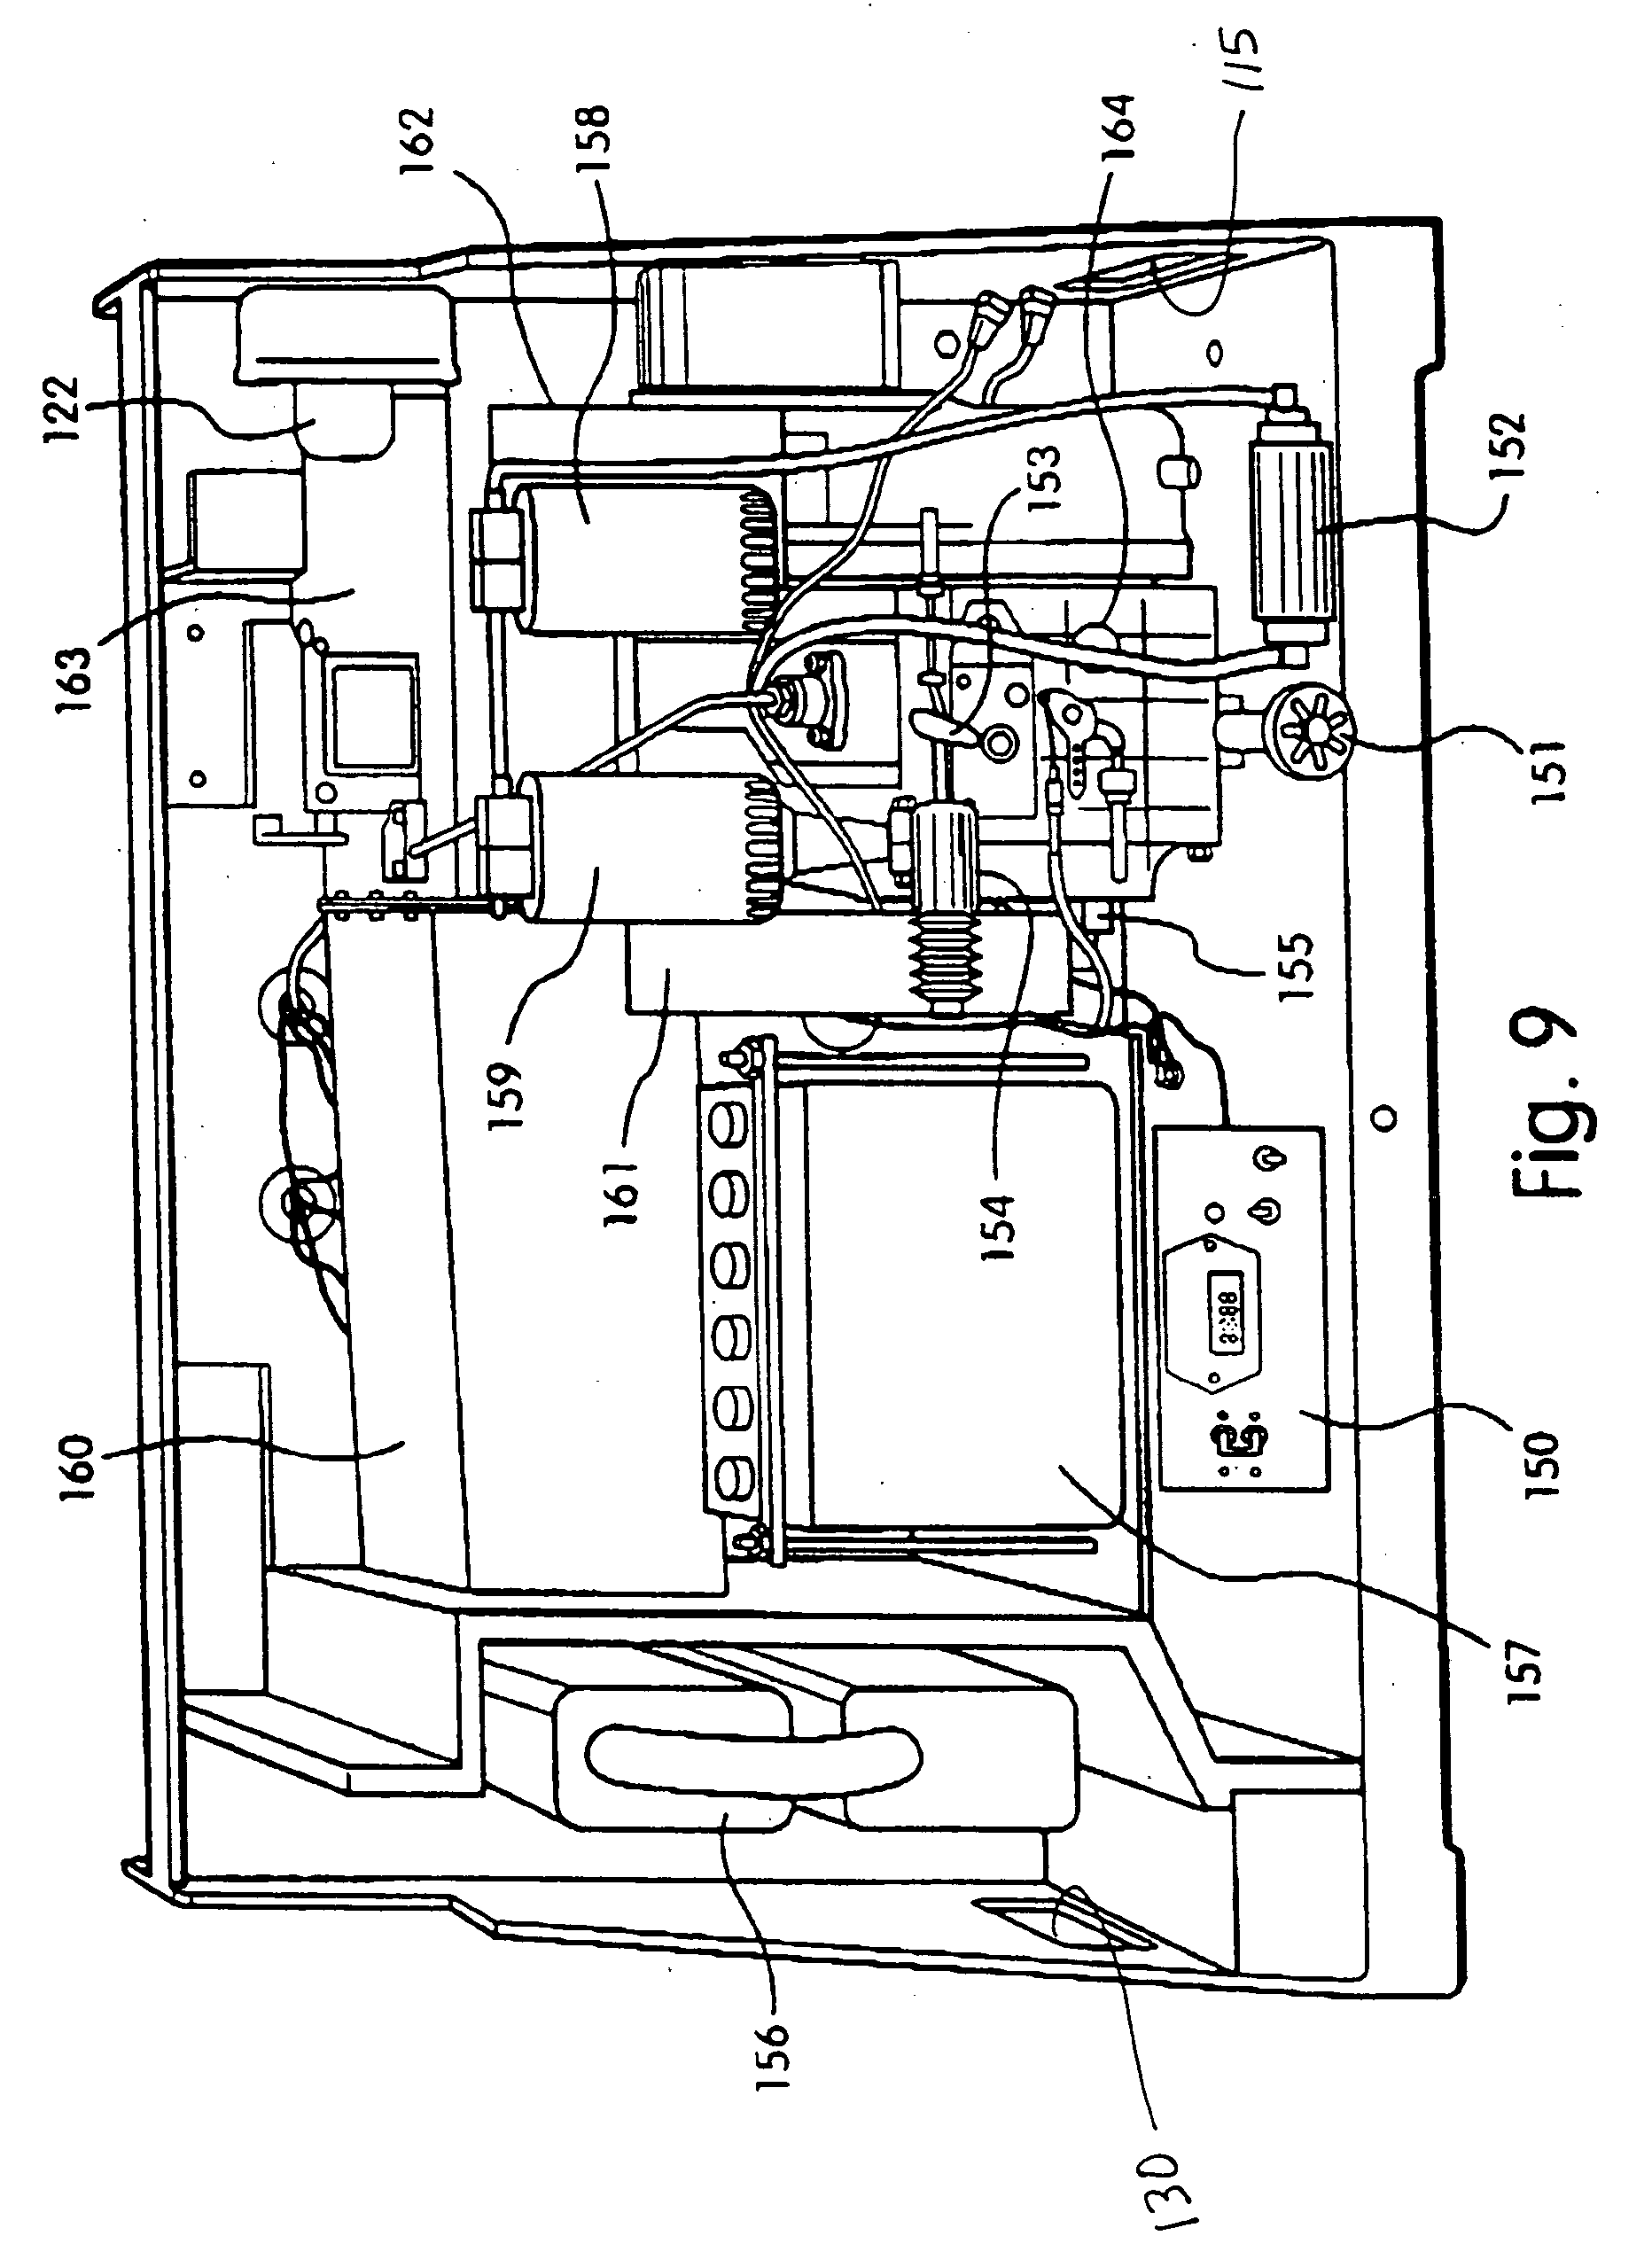 patent us20040231831 apparatus which eliminates the need for patent drawing